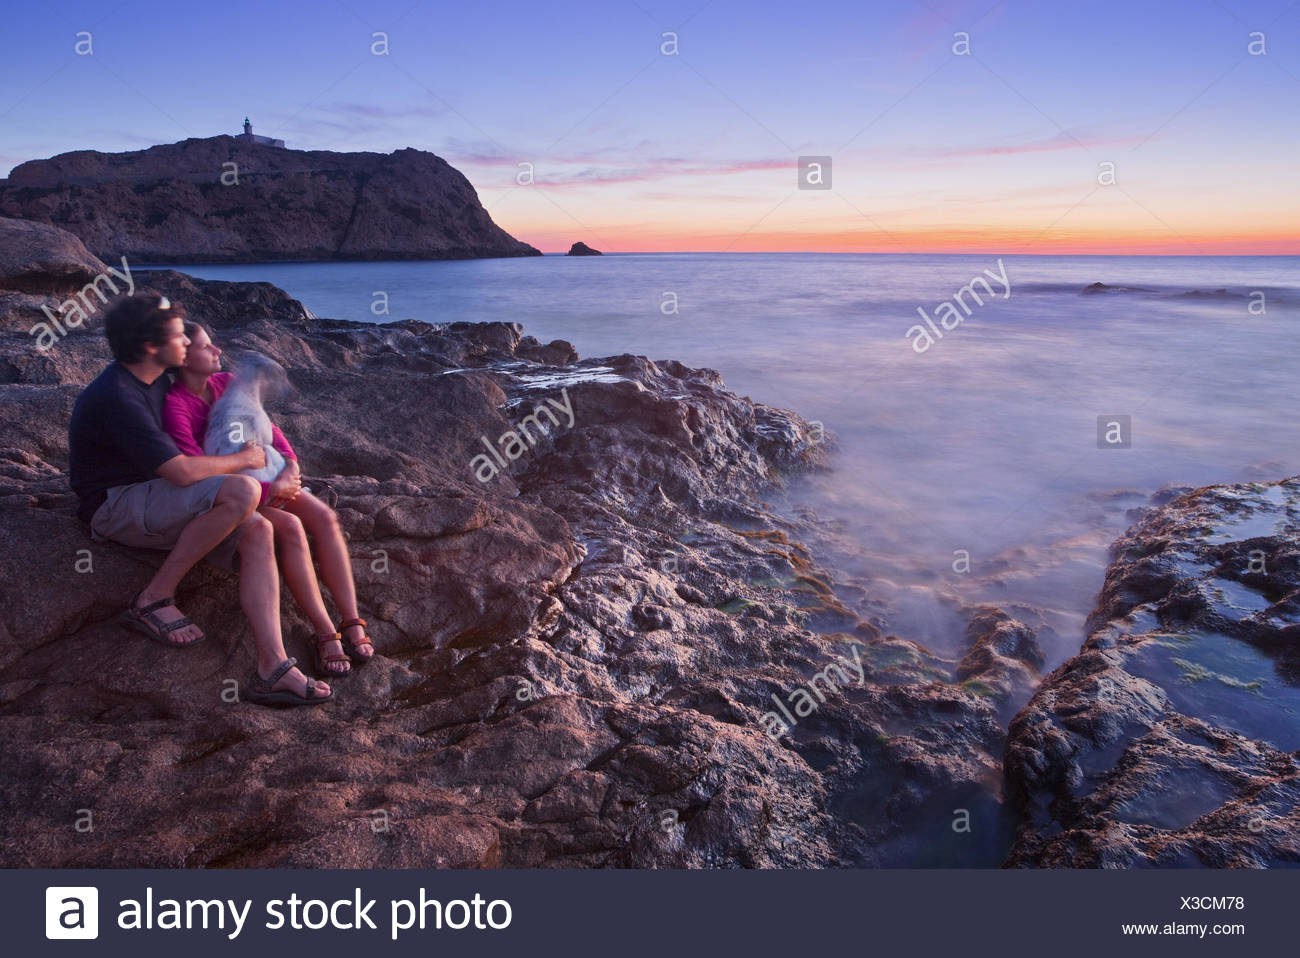 France, Corsica, L'Ile Rousse, rock coast, couple, dog, sunset, - Stock Image